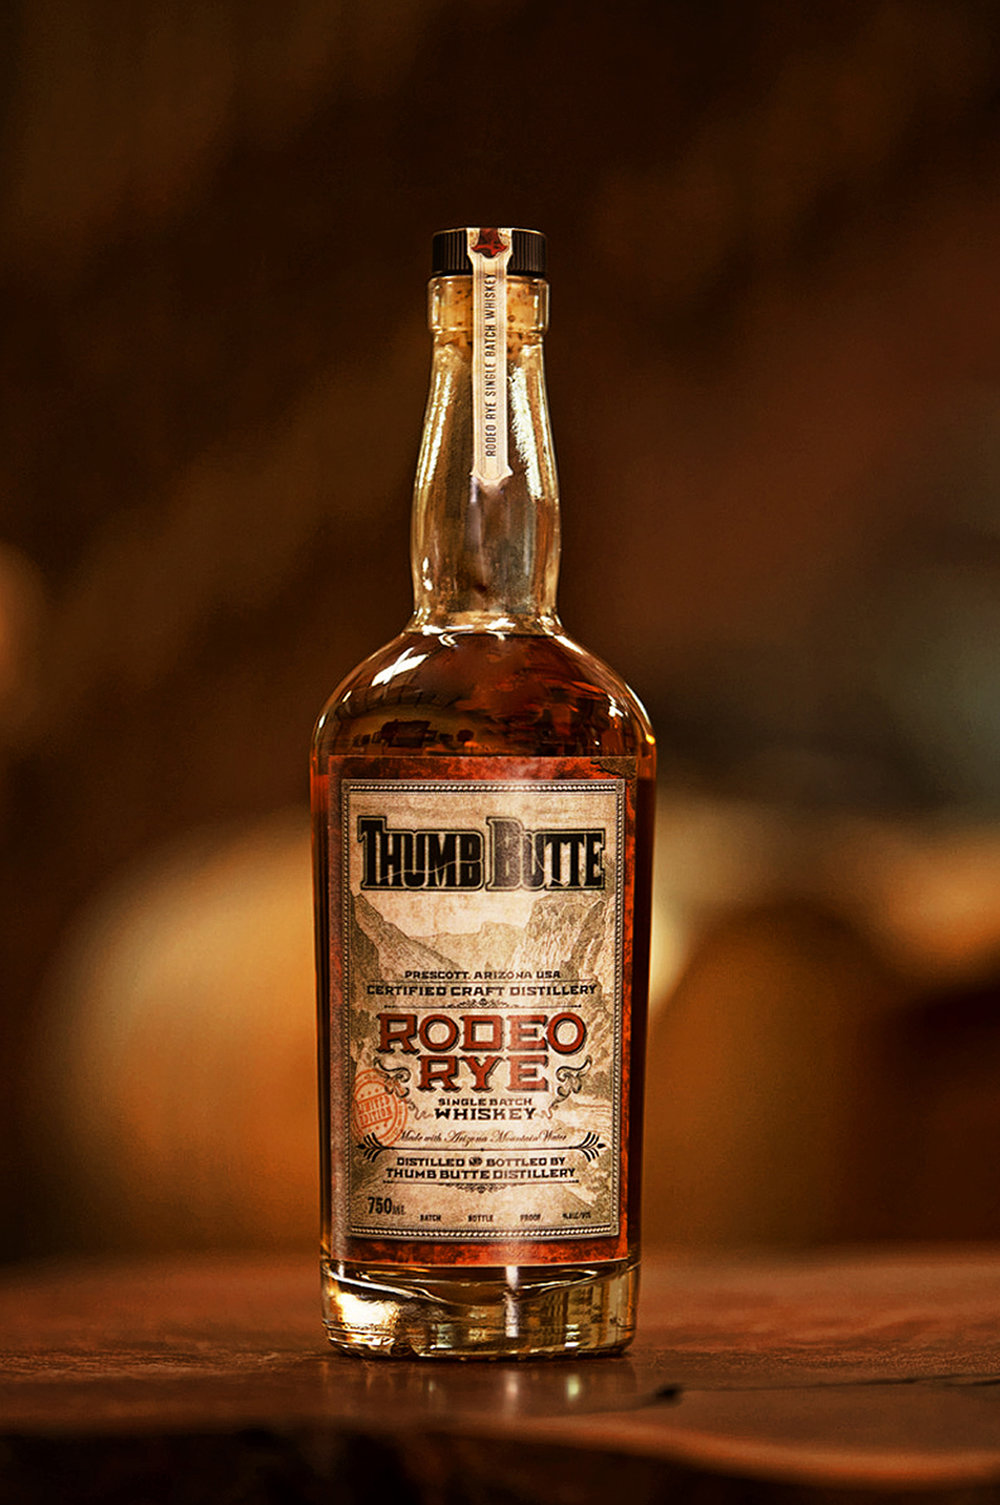 Thumb Butte Distillery Rodeo Rye Whiskey Label Design